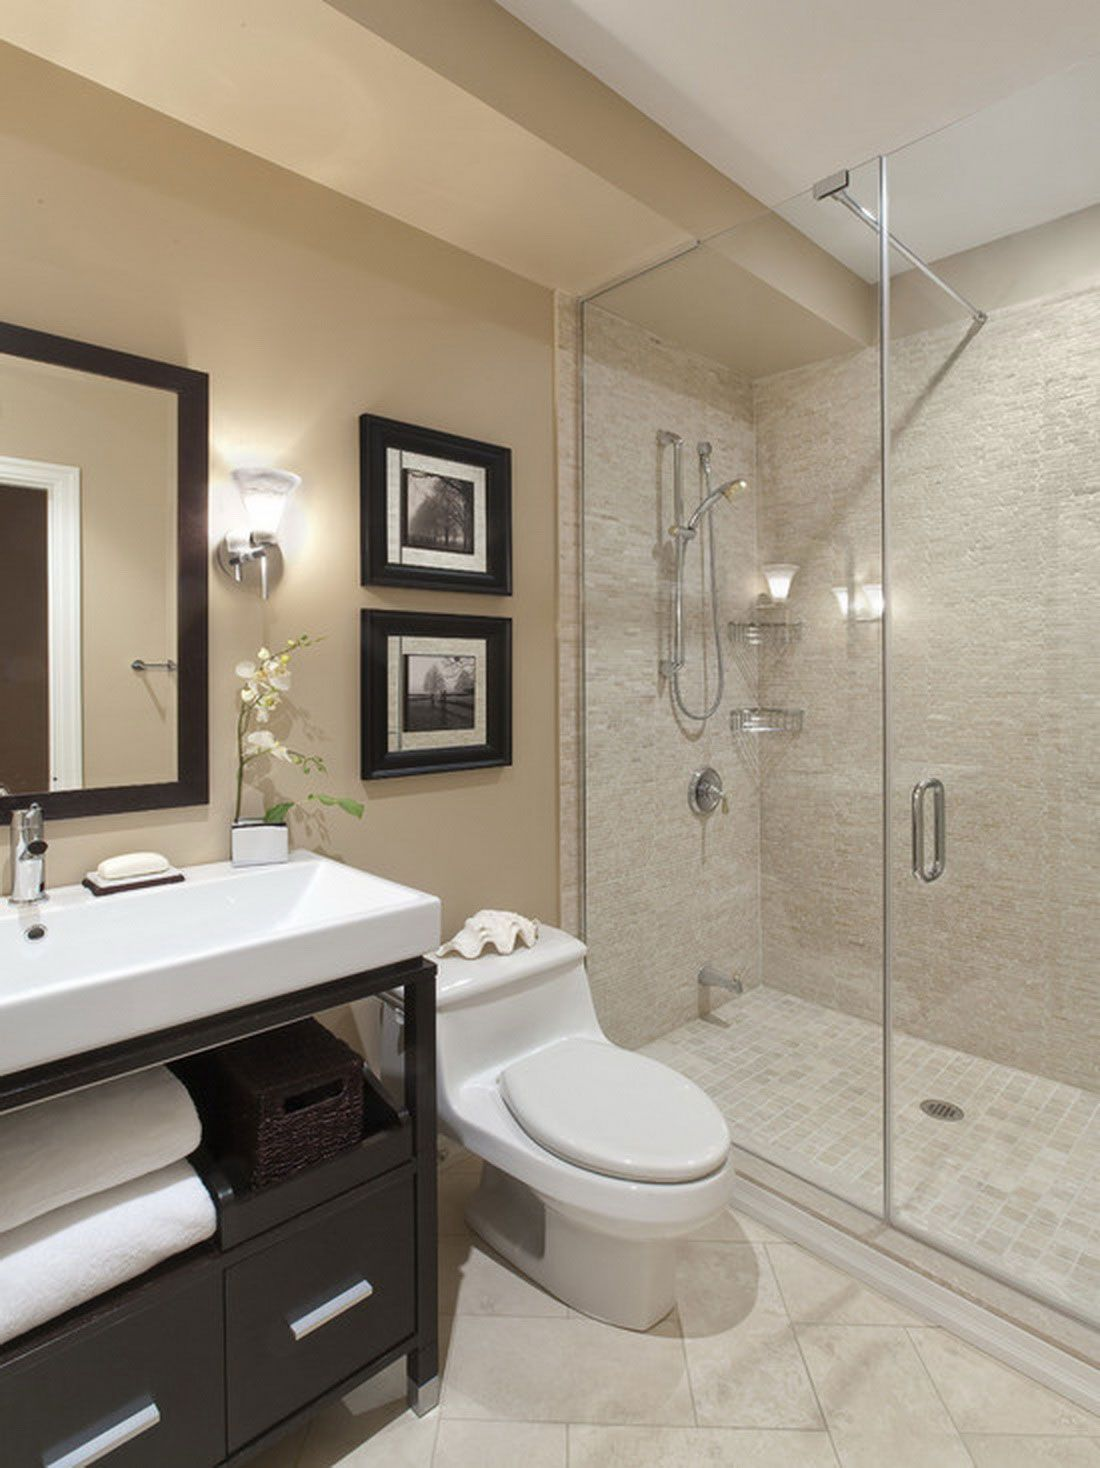 15 extraordinary transitional bathroom designs for any